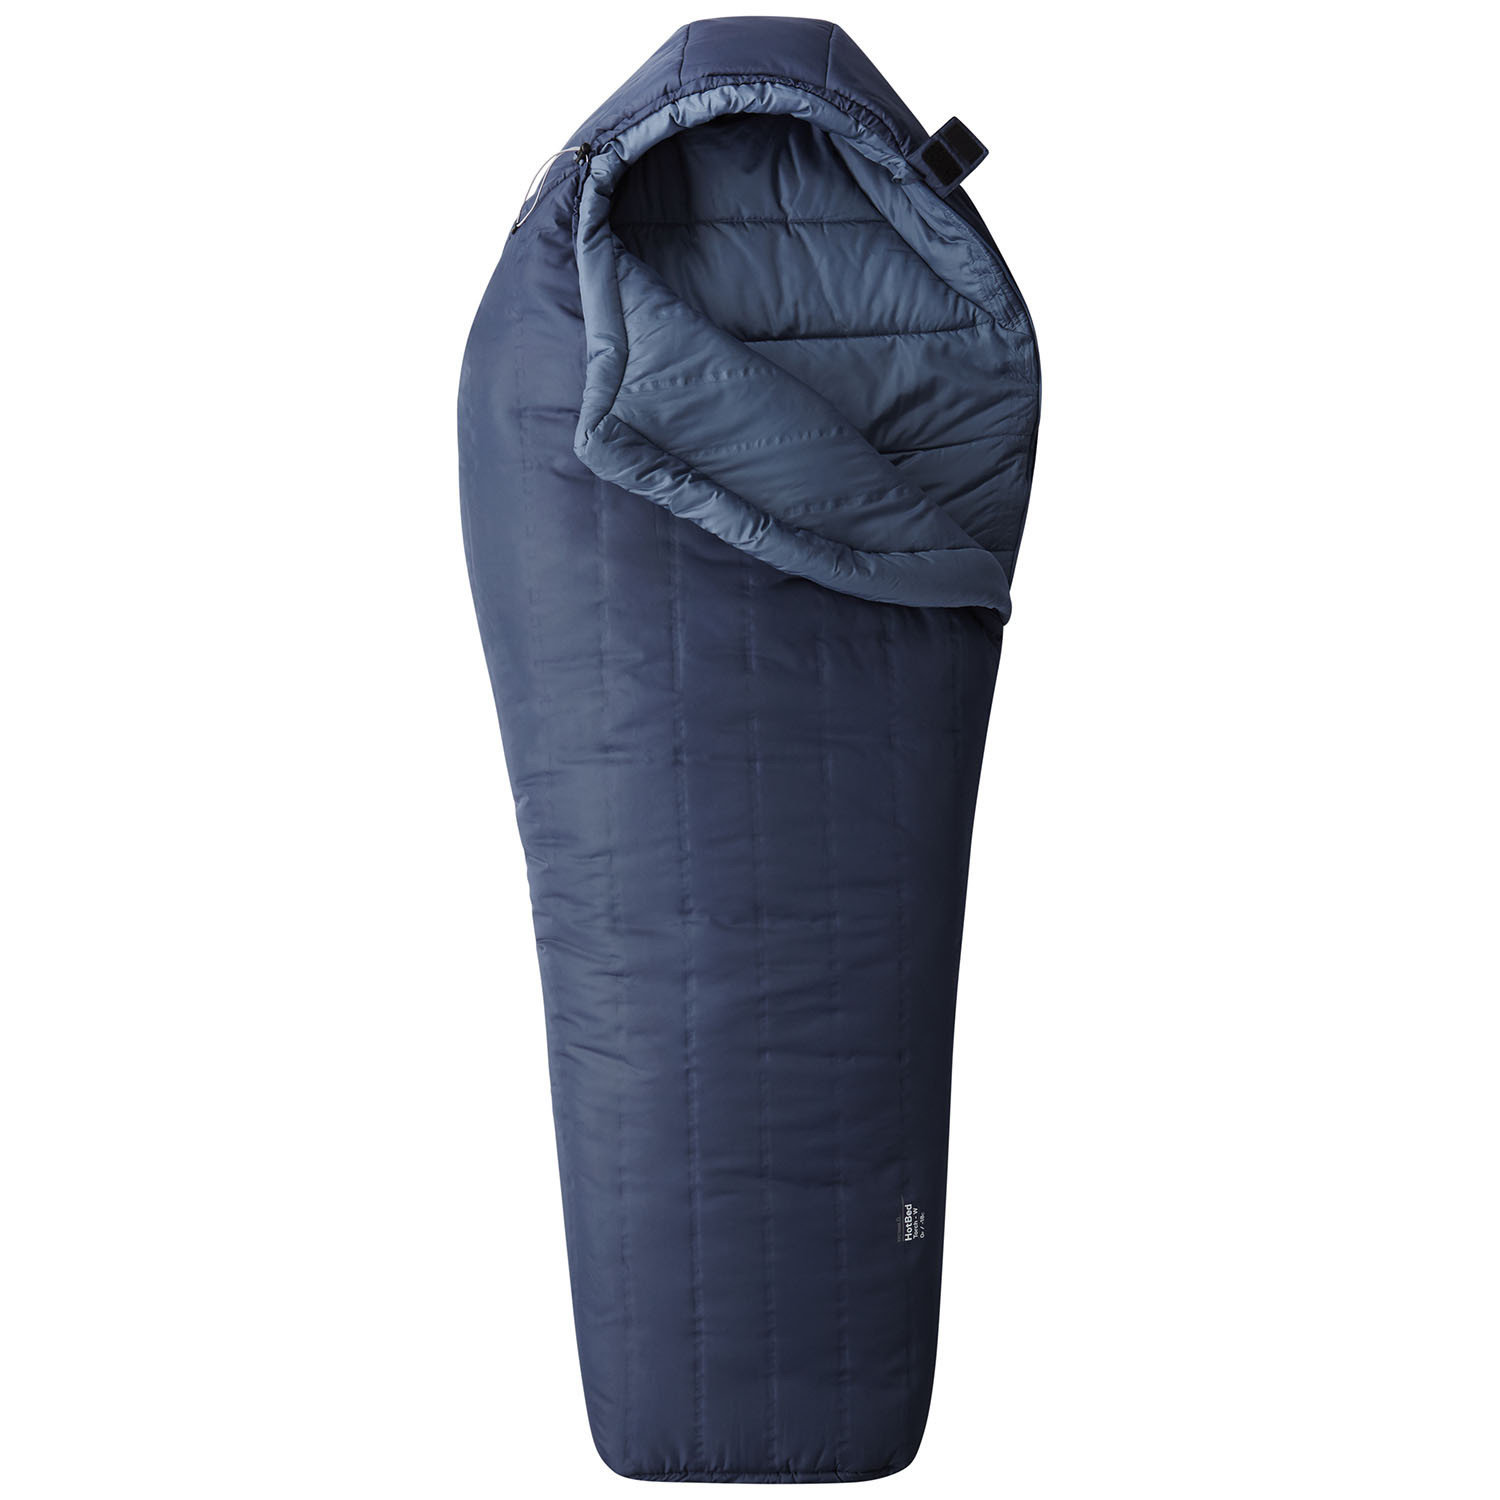 "Mountain Hardwear Hotbed Torch -18C Sleeping Bag, fits up to 5'8"", Women's"